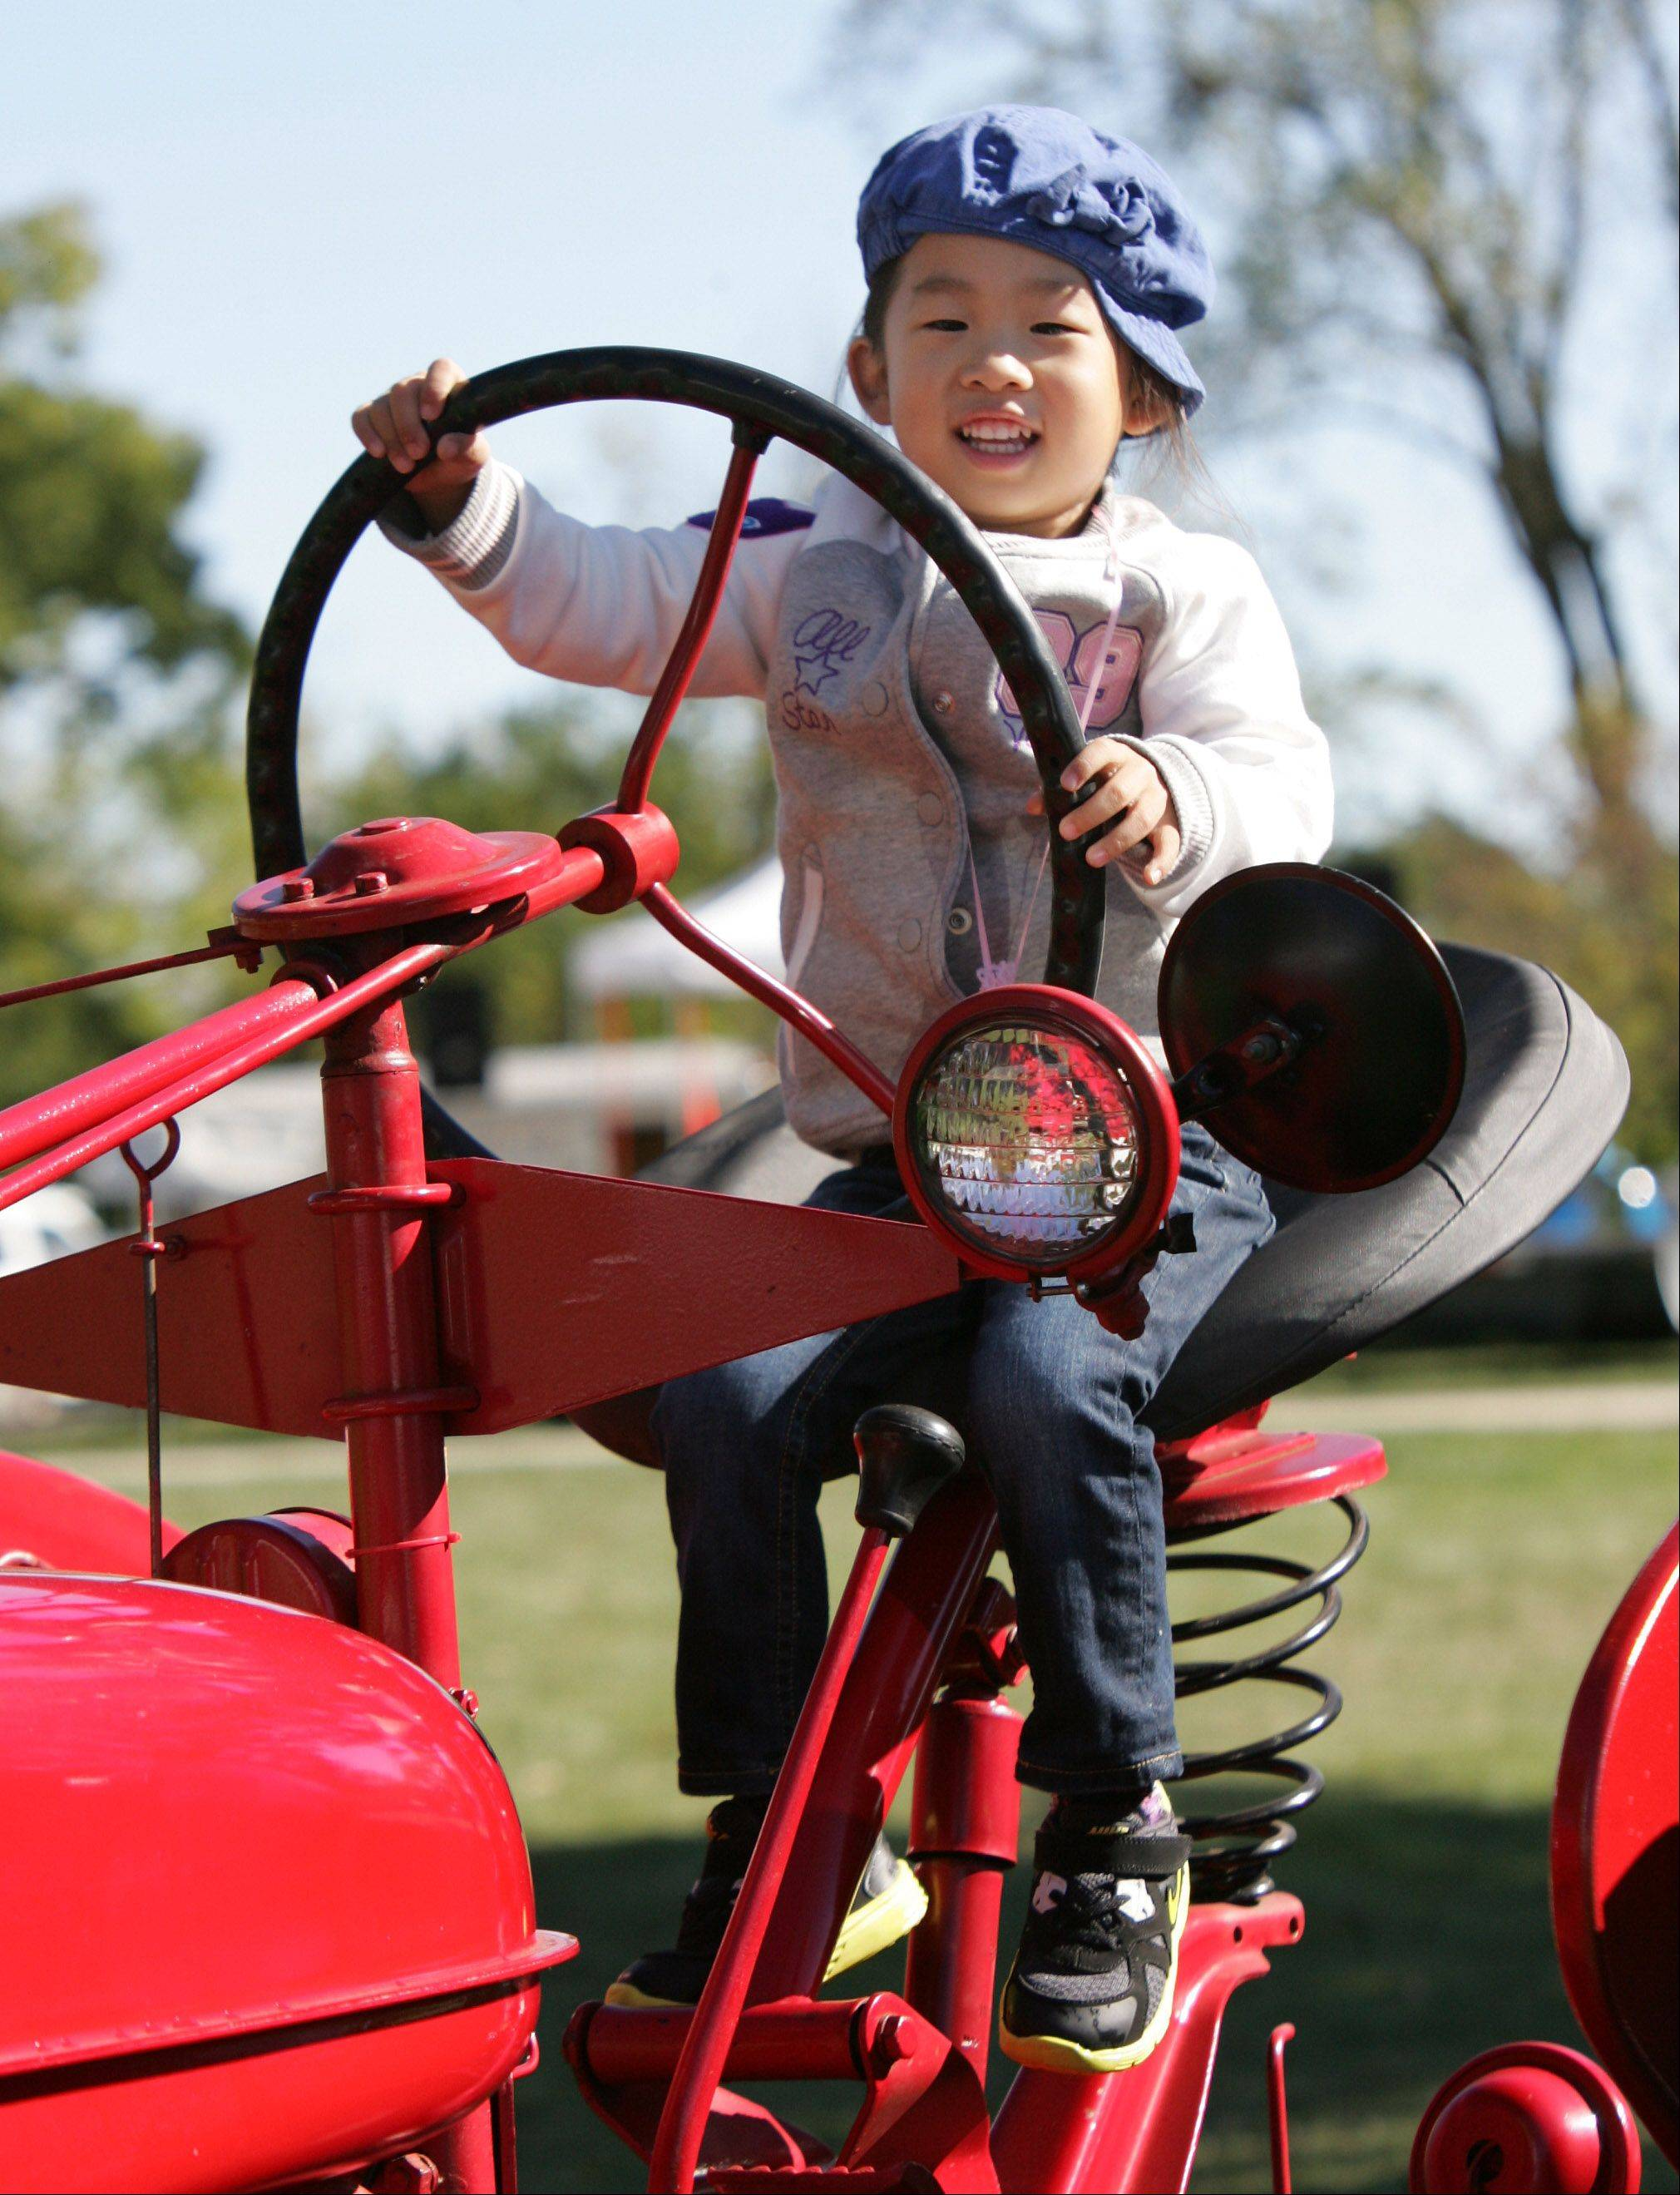 Gina Chung, 3, of Buffalo Grove, pretends to drive a 1950 McCormick Farmall tractor during the 20th Annual Farm Heritage Festival Sunday at Lakewood Forest Preserve near Wauconda. The event was co-sponsored by the Lake County Discovery Museum and the Lake County Farm Heritage Association.